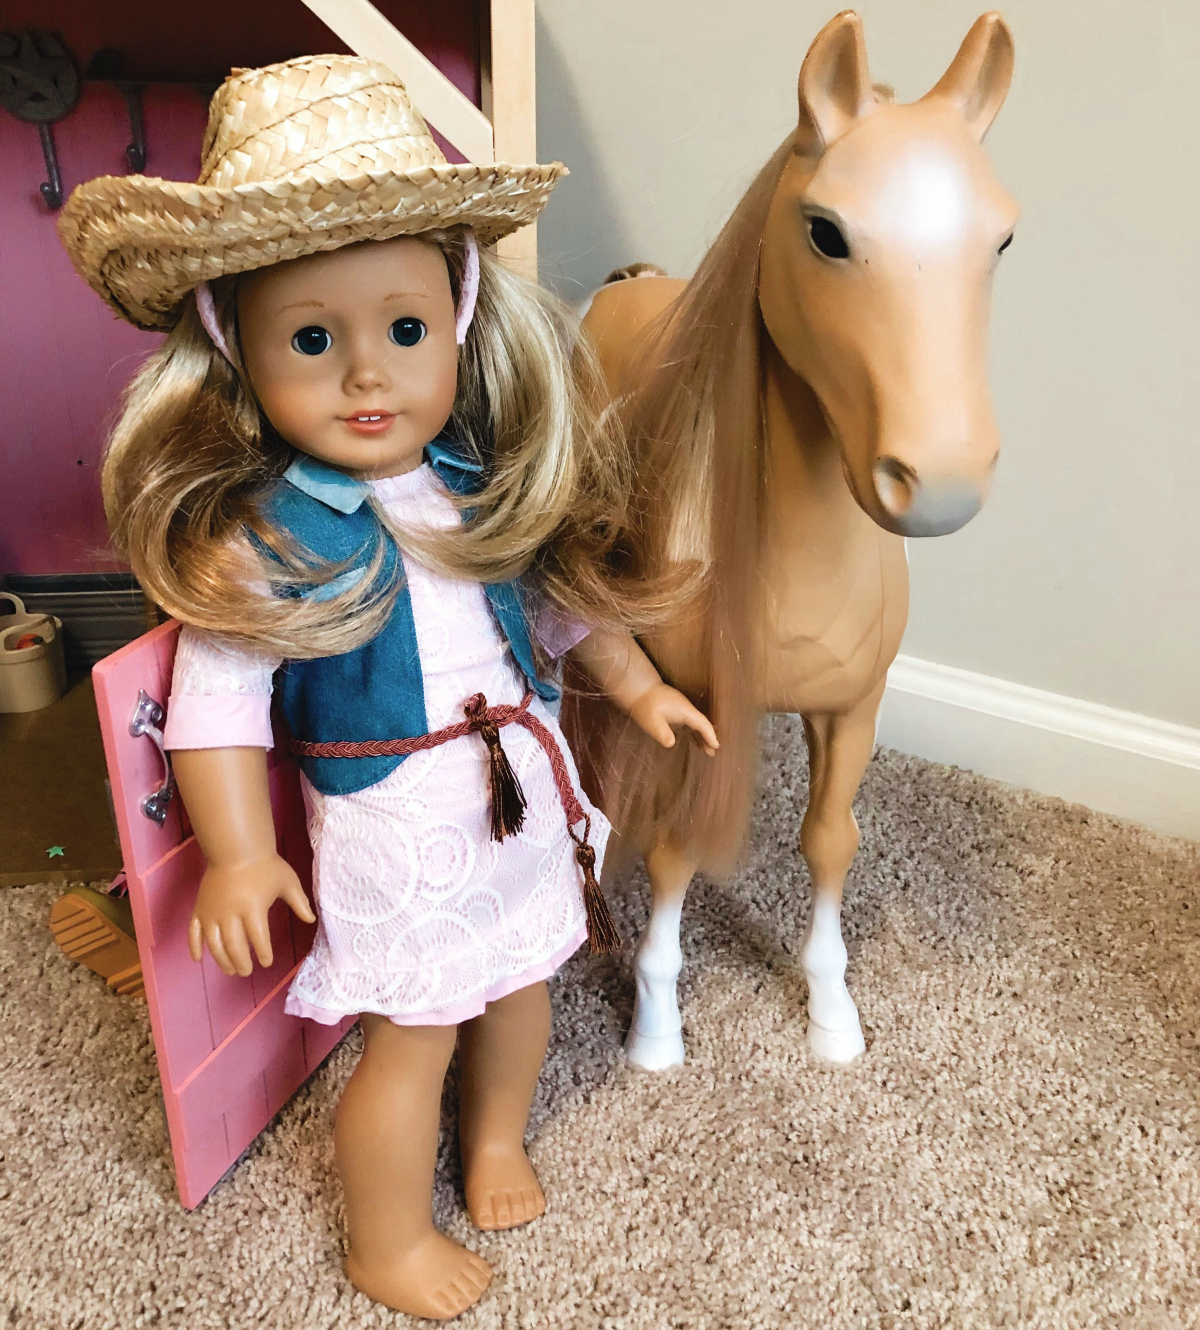 American Girl doll in knockoff clothing